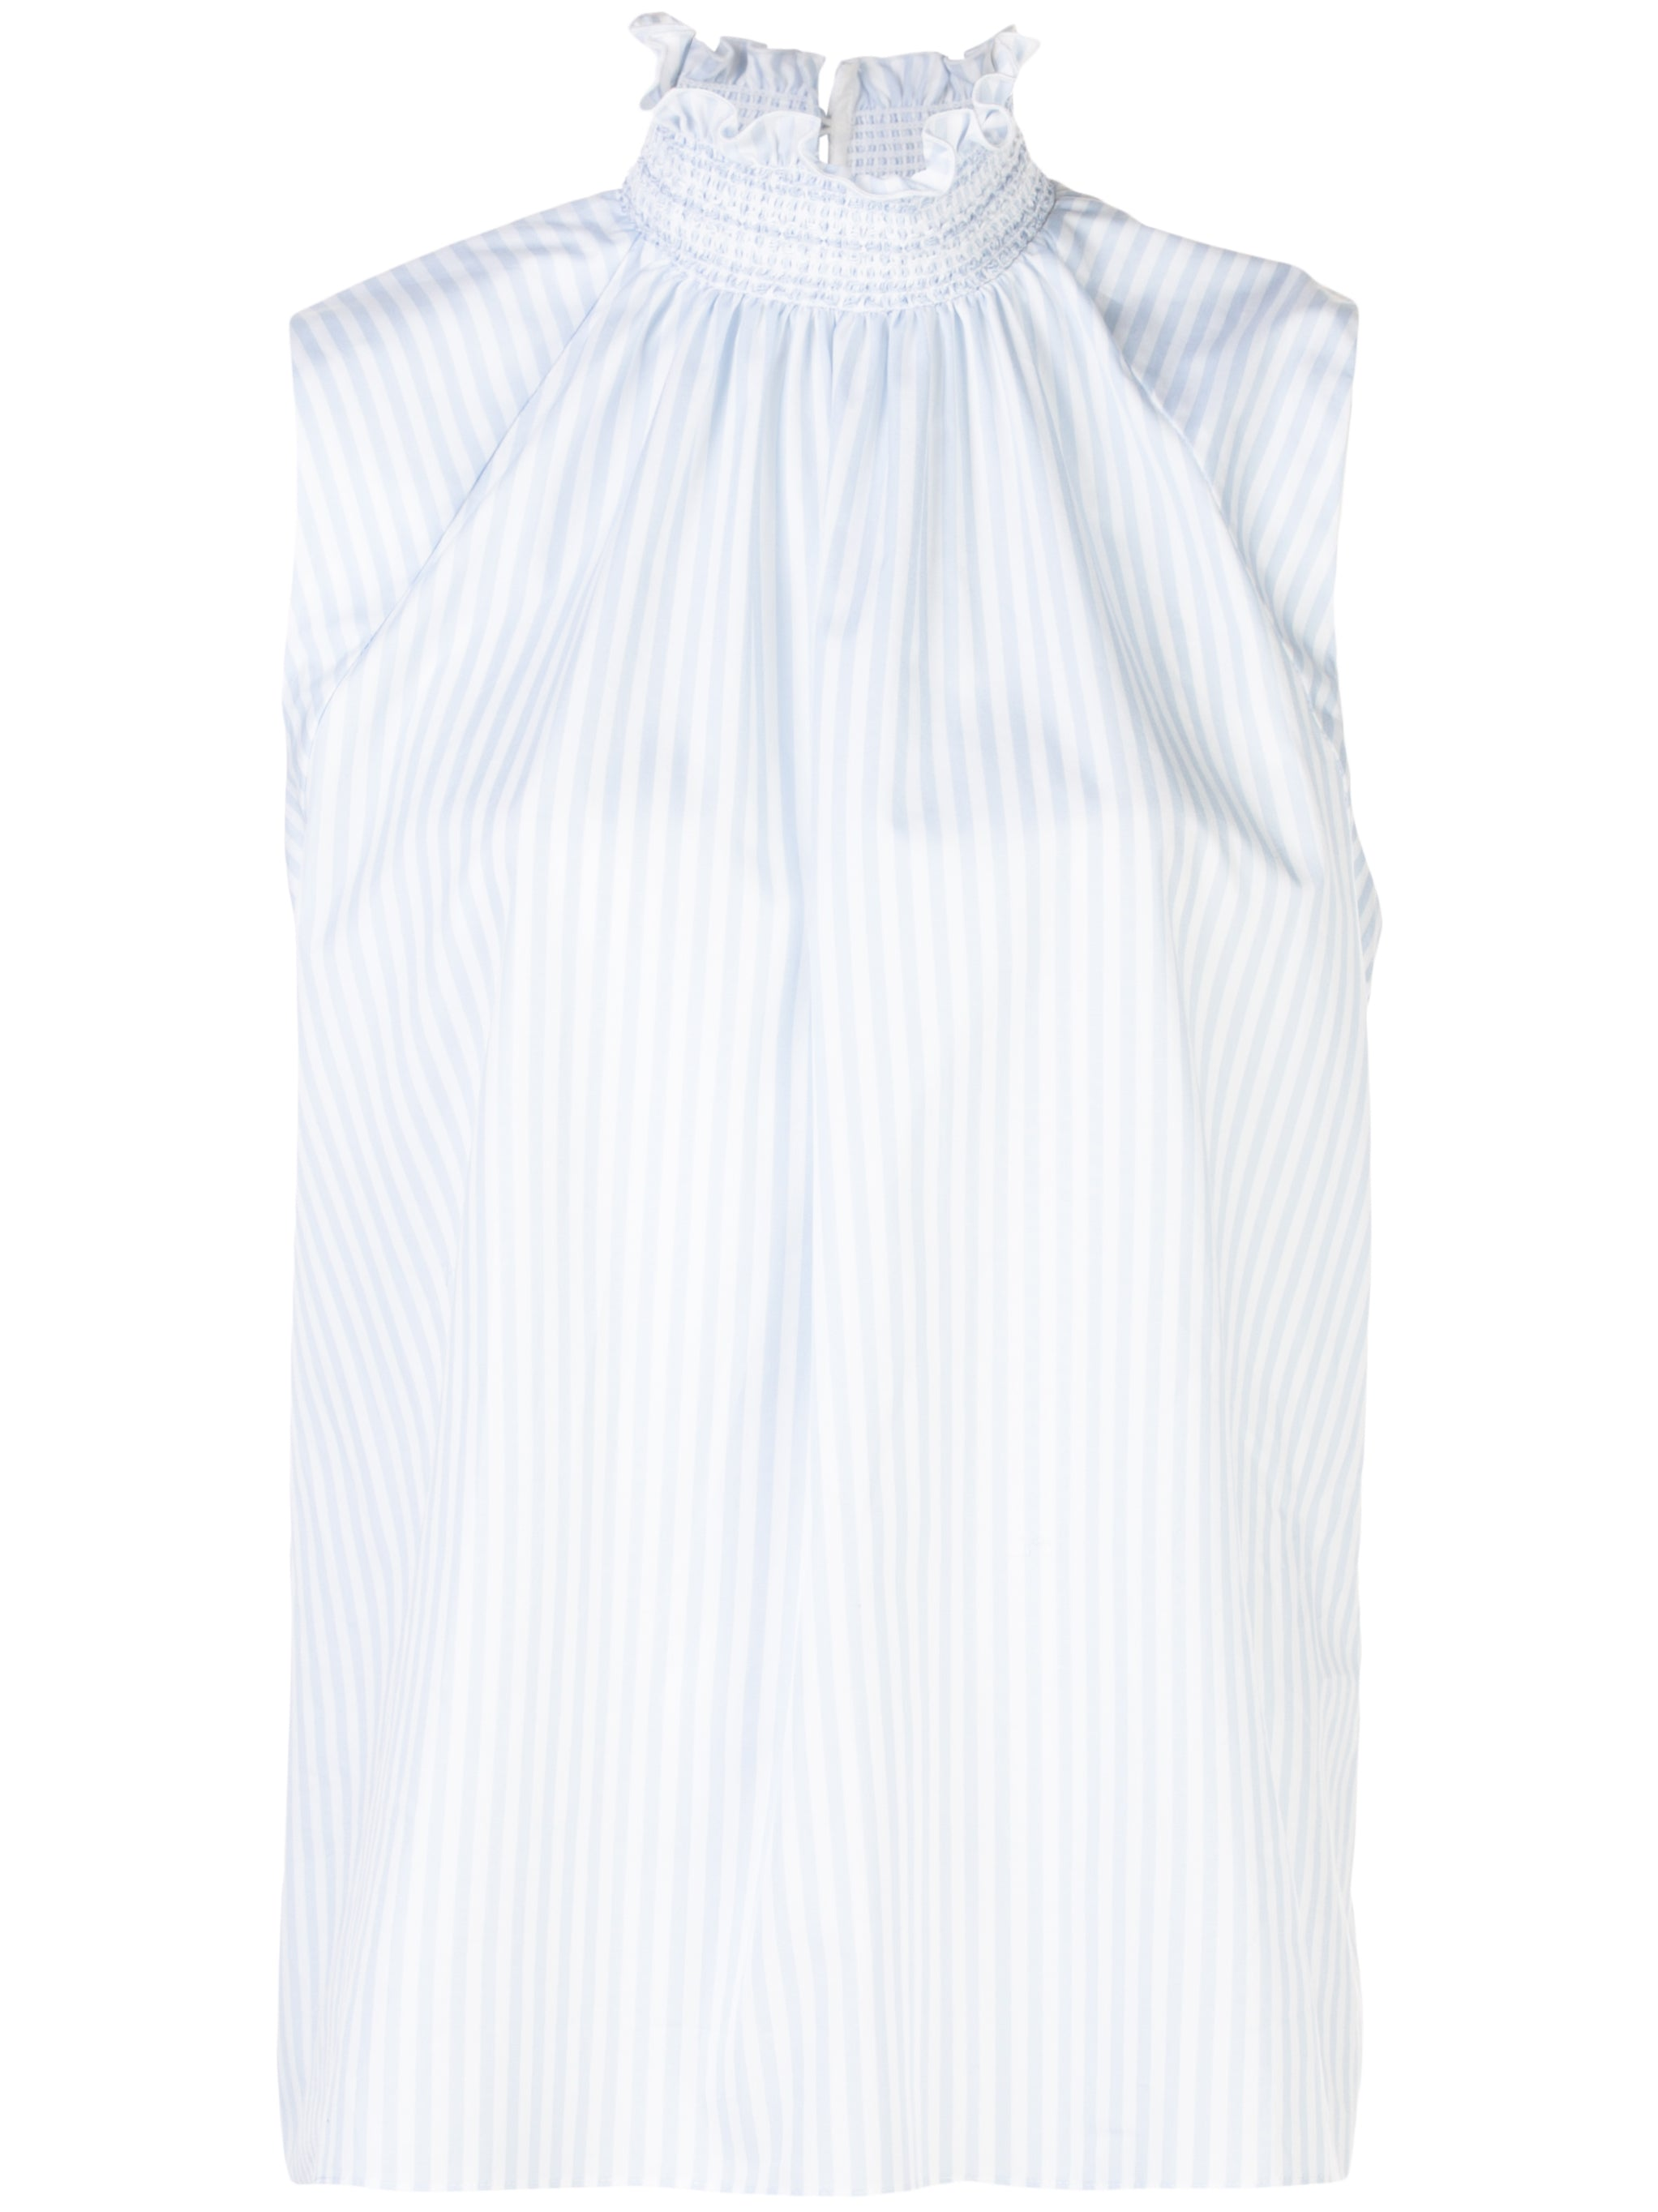 SLEEVELESS SMOCKED NECK TOP IN STRIPED COTTON